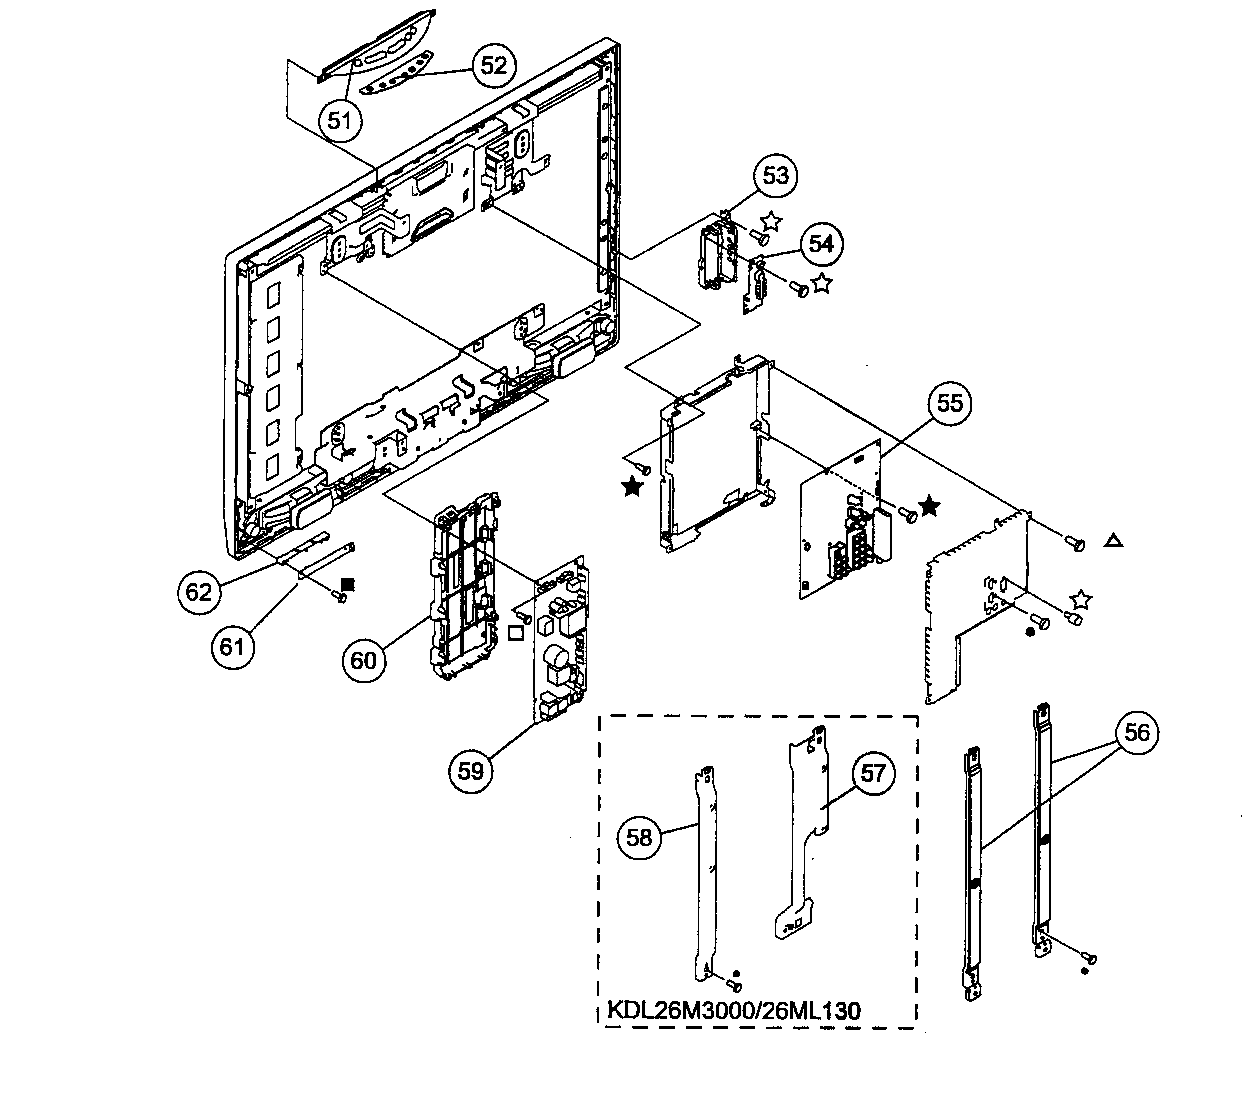 Sony KDL-32M3000 chassis diagram